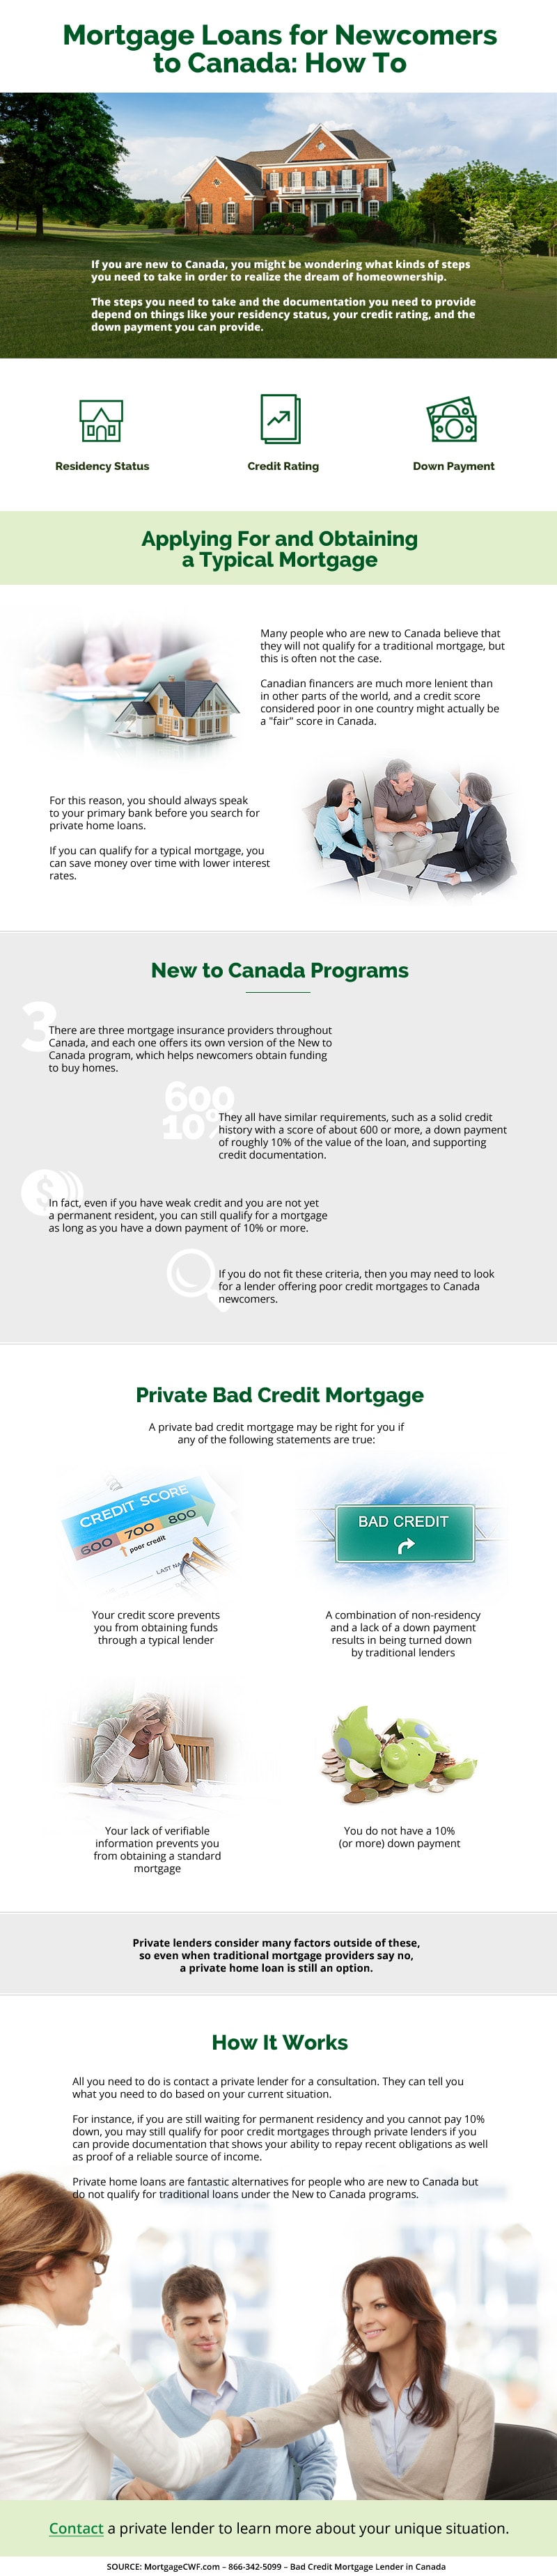 How to Get a Mortgage Loan for Newcomers to Canada - Infographic